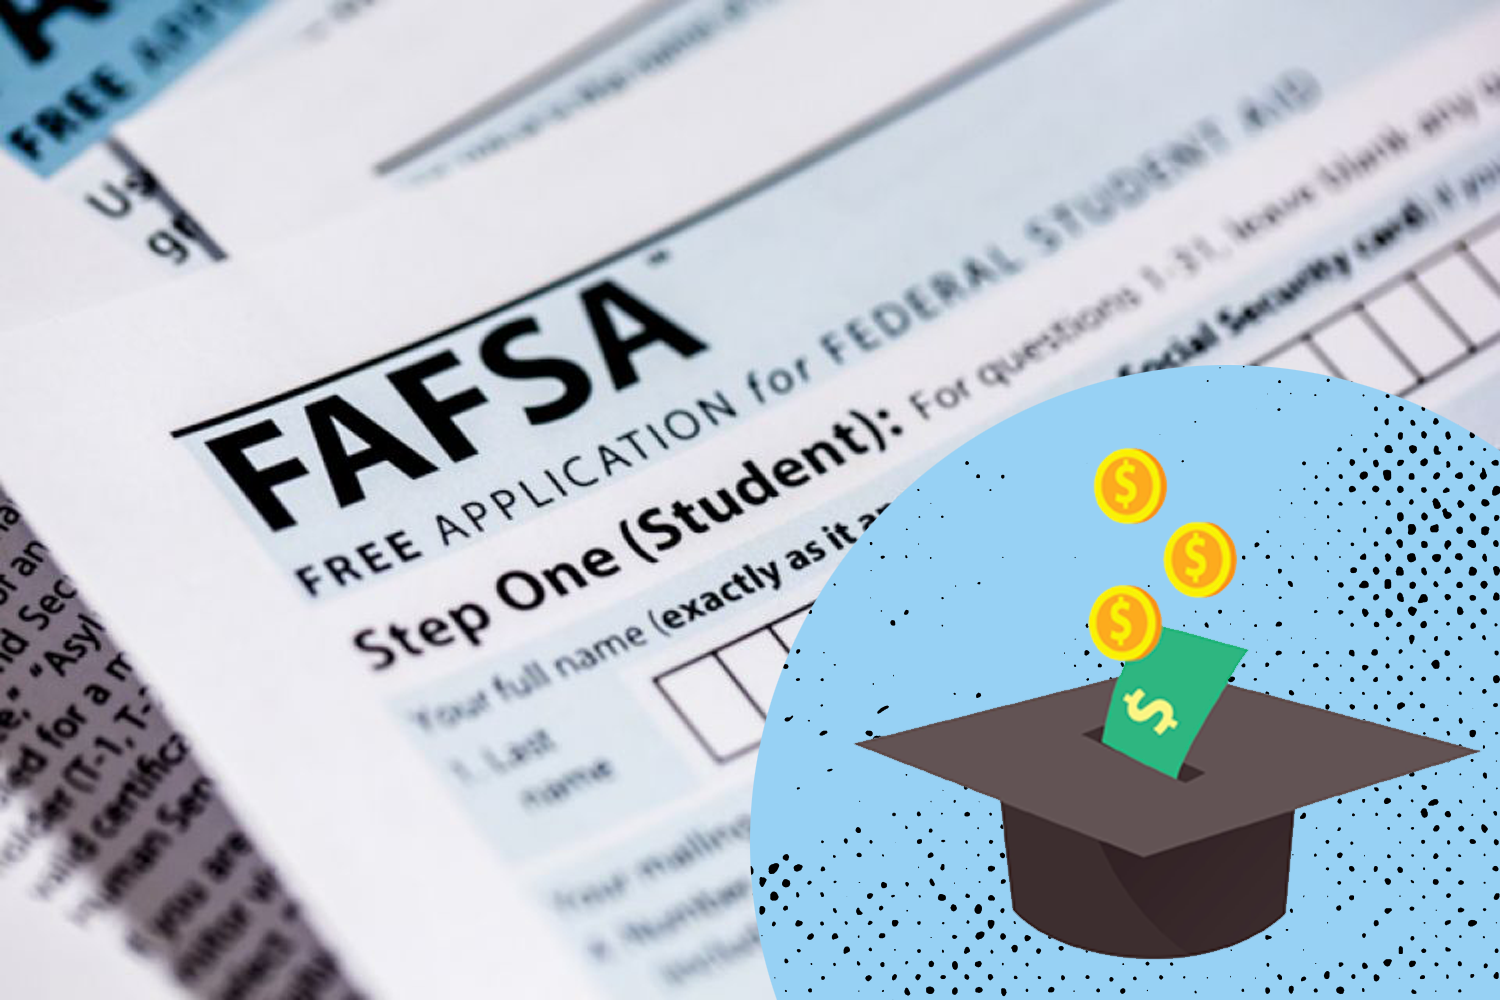 FAFSA application with financial aid illustration